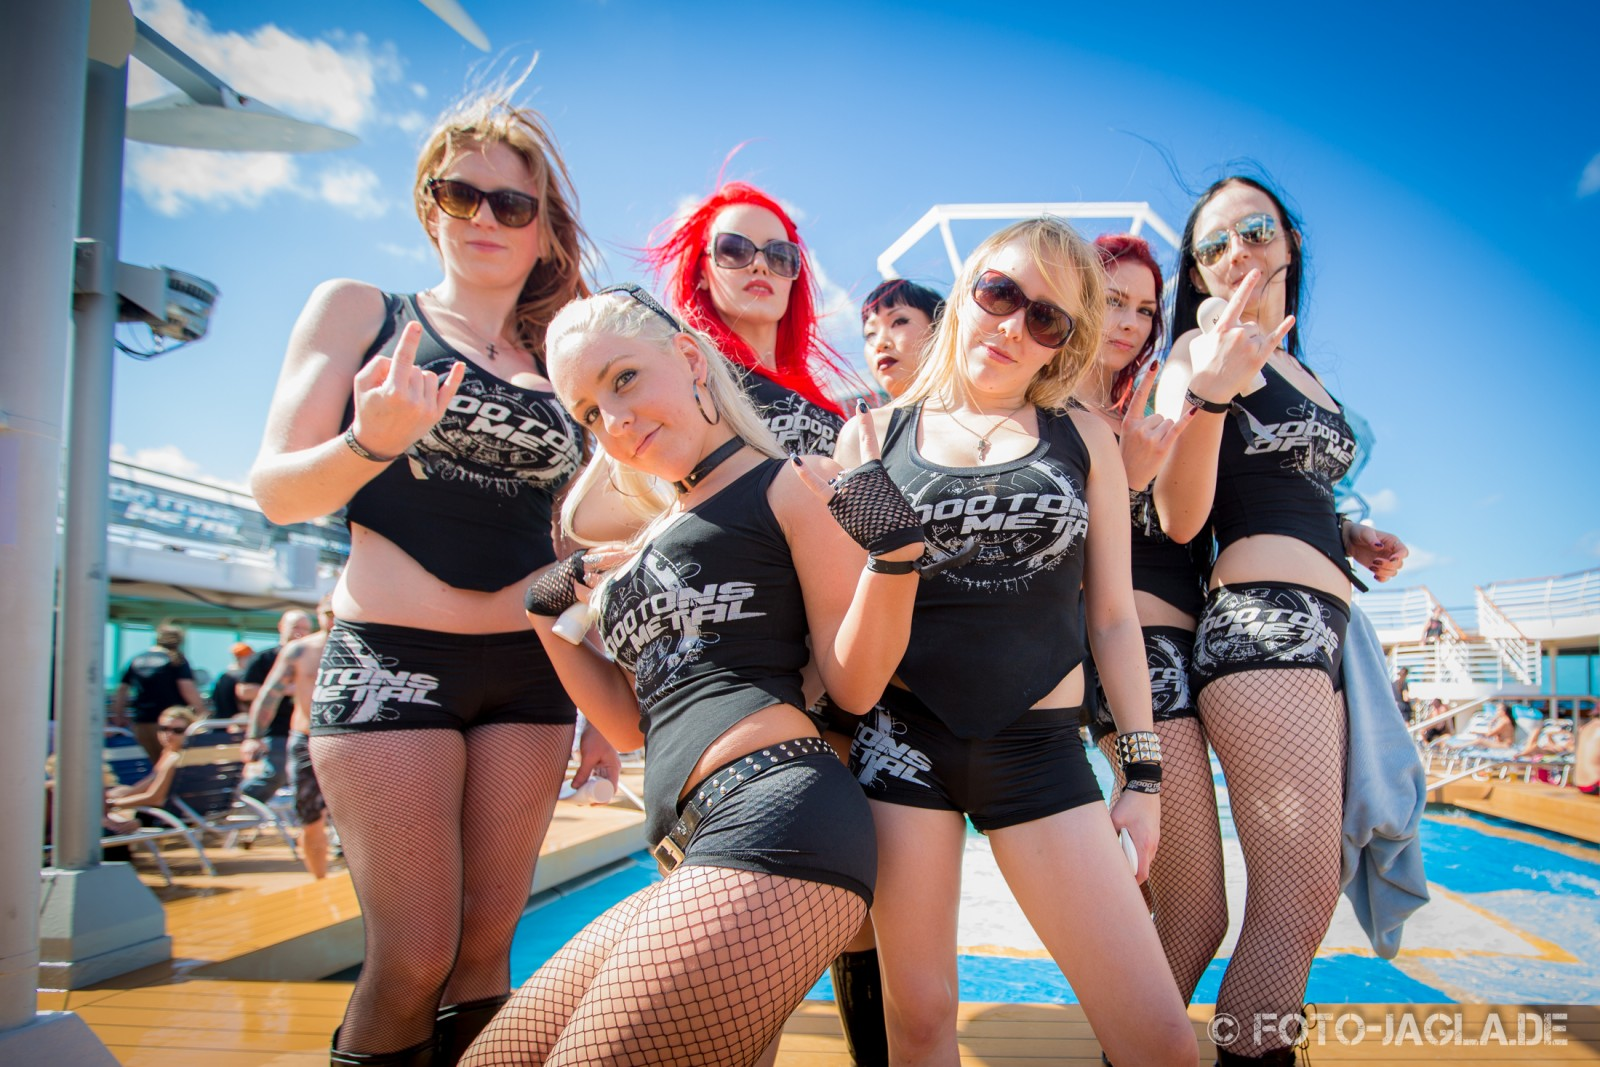 70000 Tons of Metal 2013 ::. Poolgirls ::. http://www.foto-jagla.de